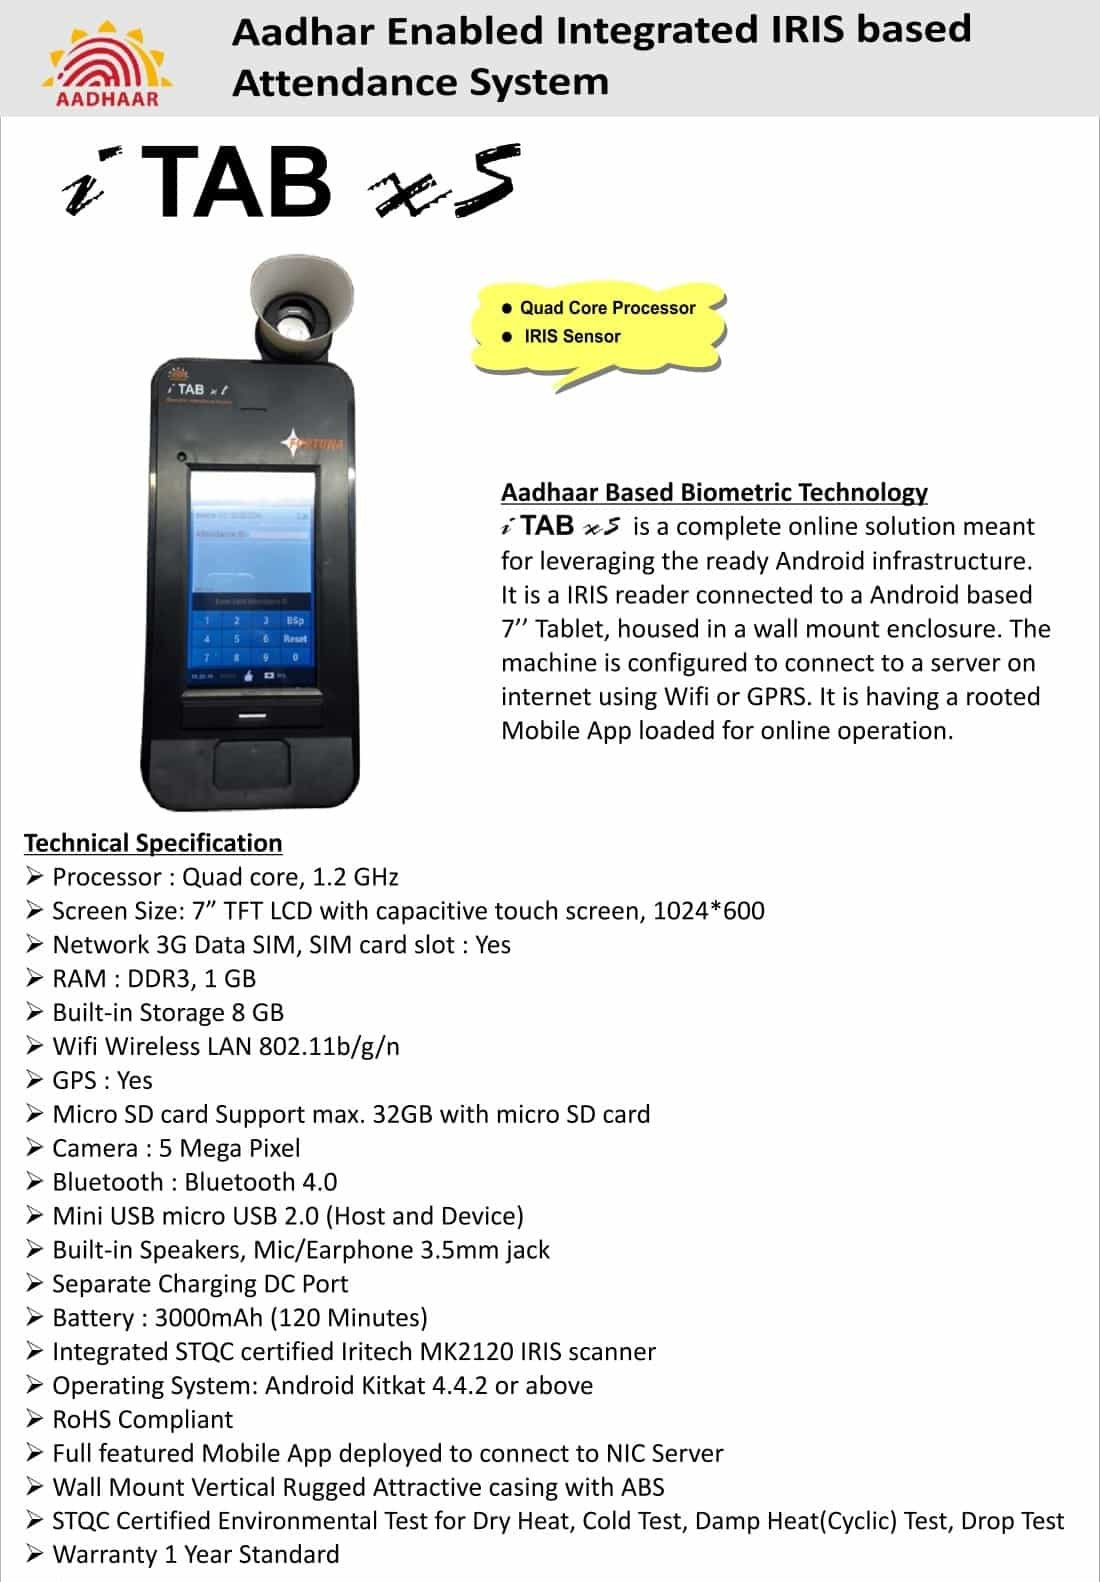 Aadhaar Enabled Biometric Attendance System (AEBAS), Fingerprint Delhi